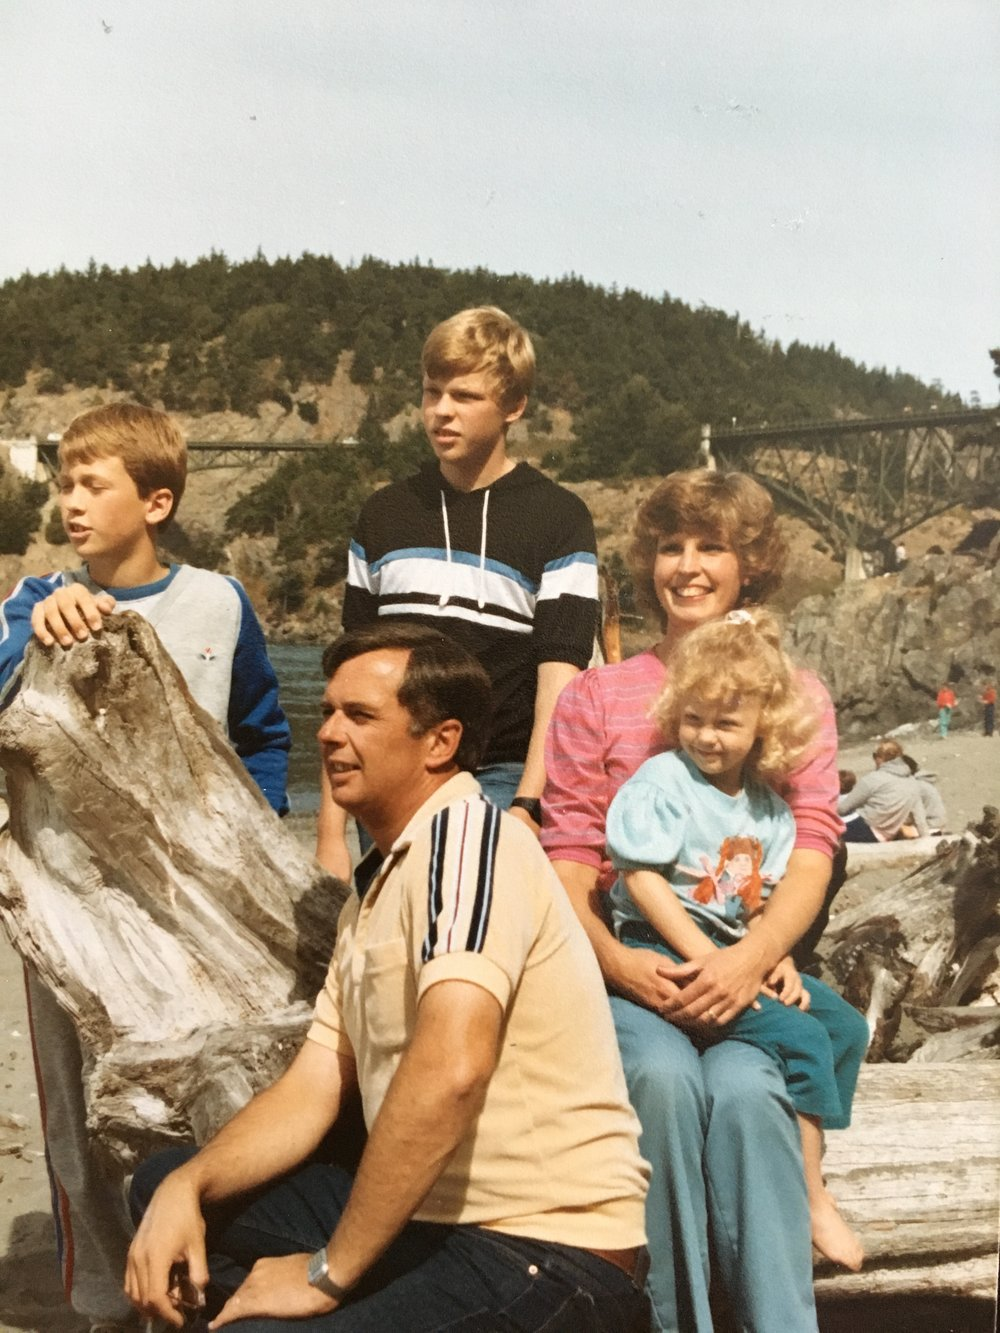 circa 1985 - Deception Pass, Whidbey Island, WA